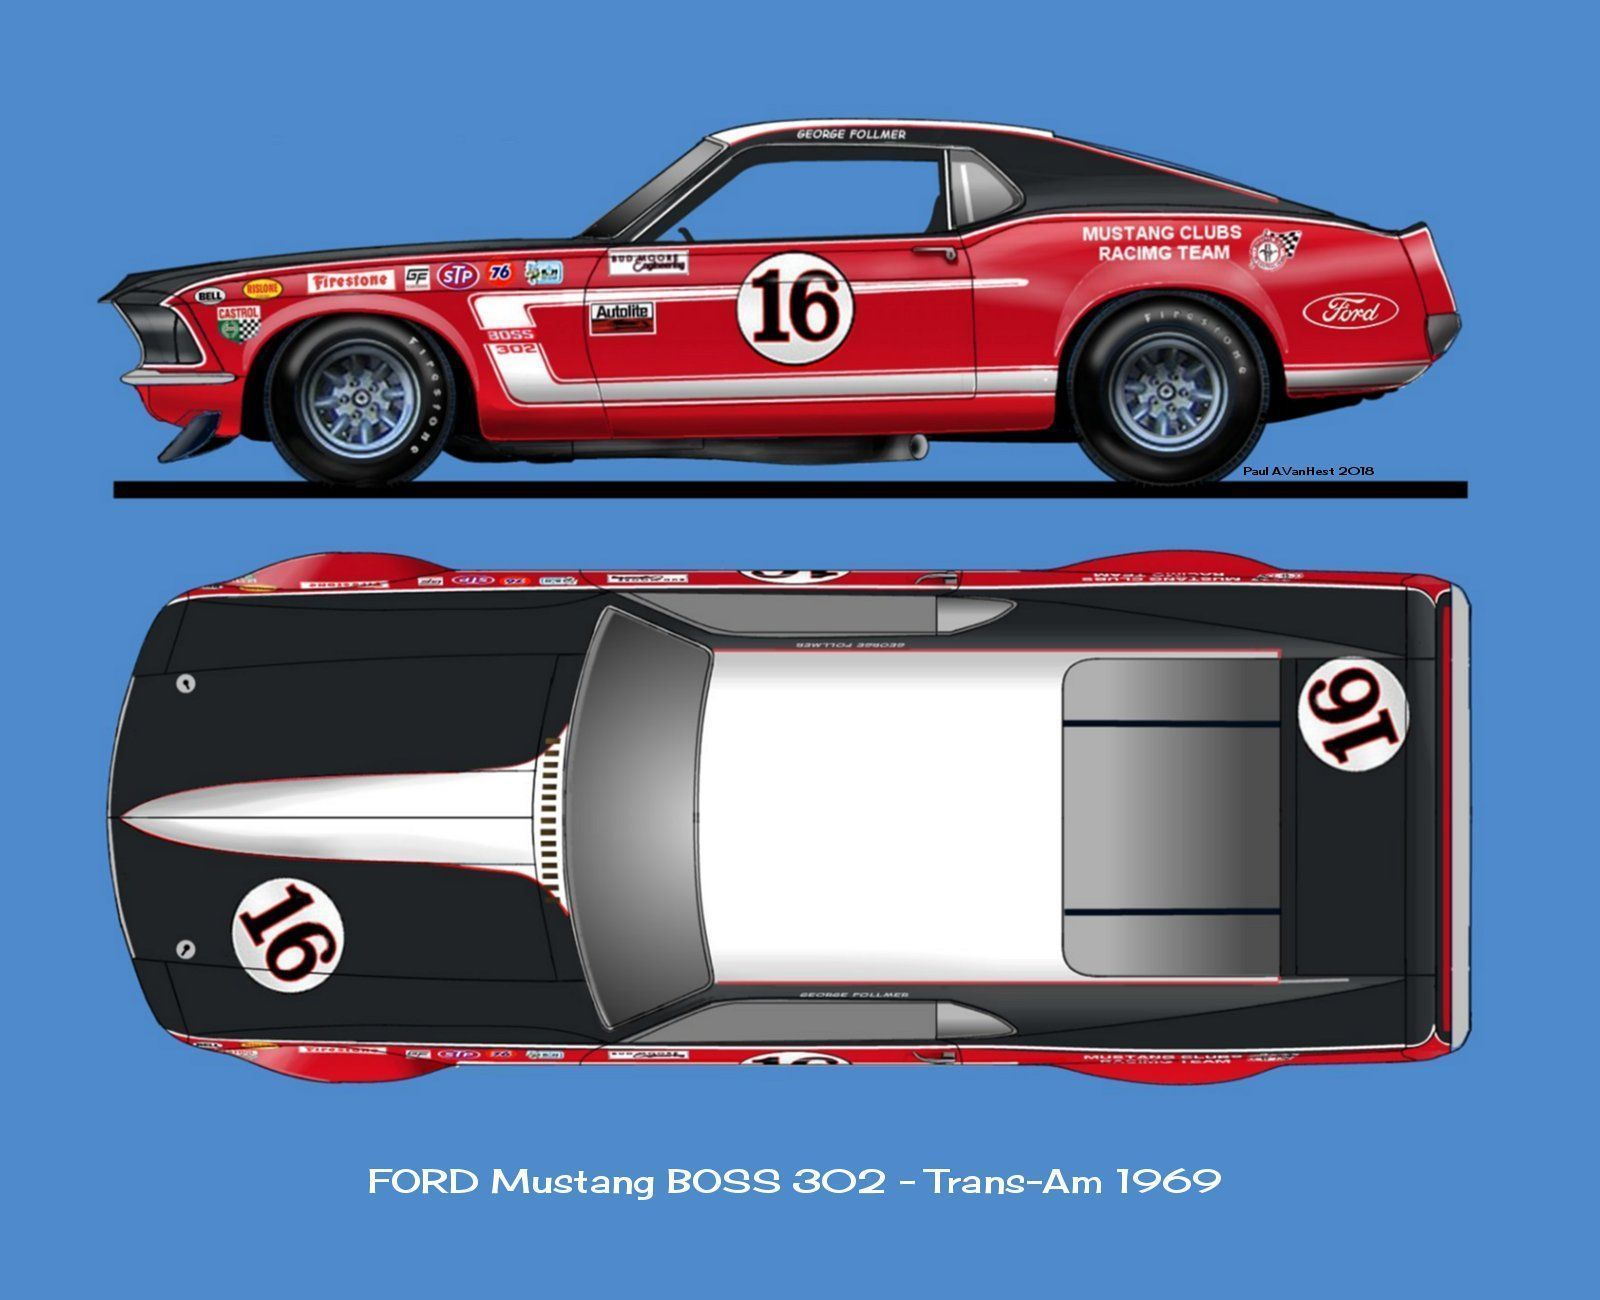 Ford Mustang Boss 302        Ford Mustang Boss 302